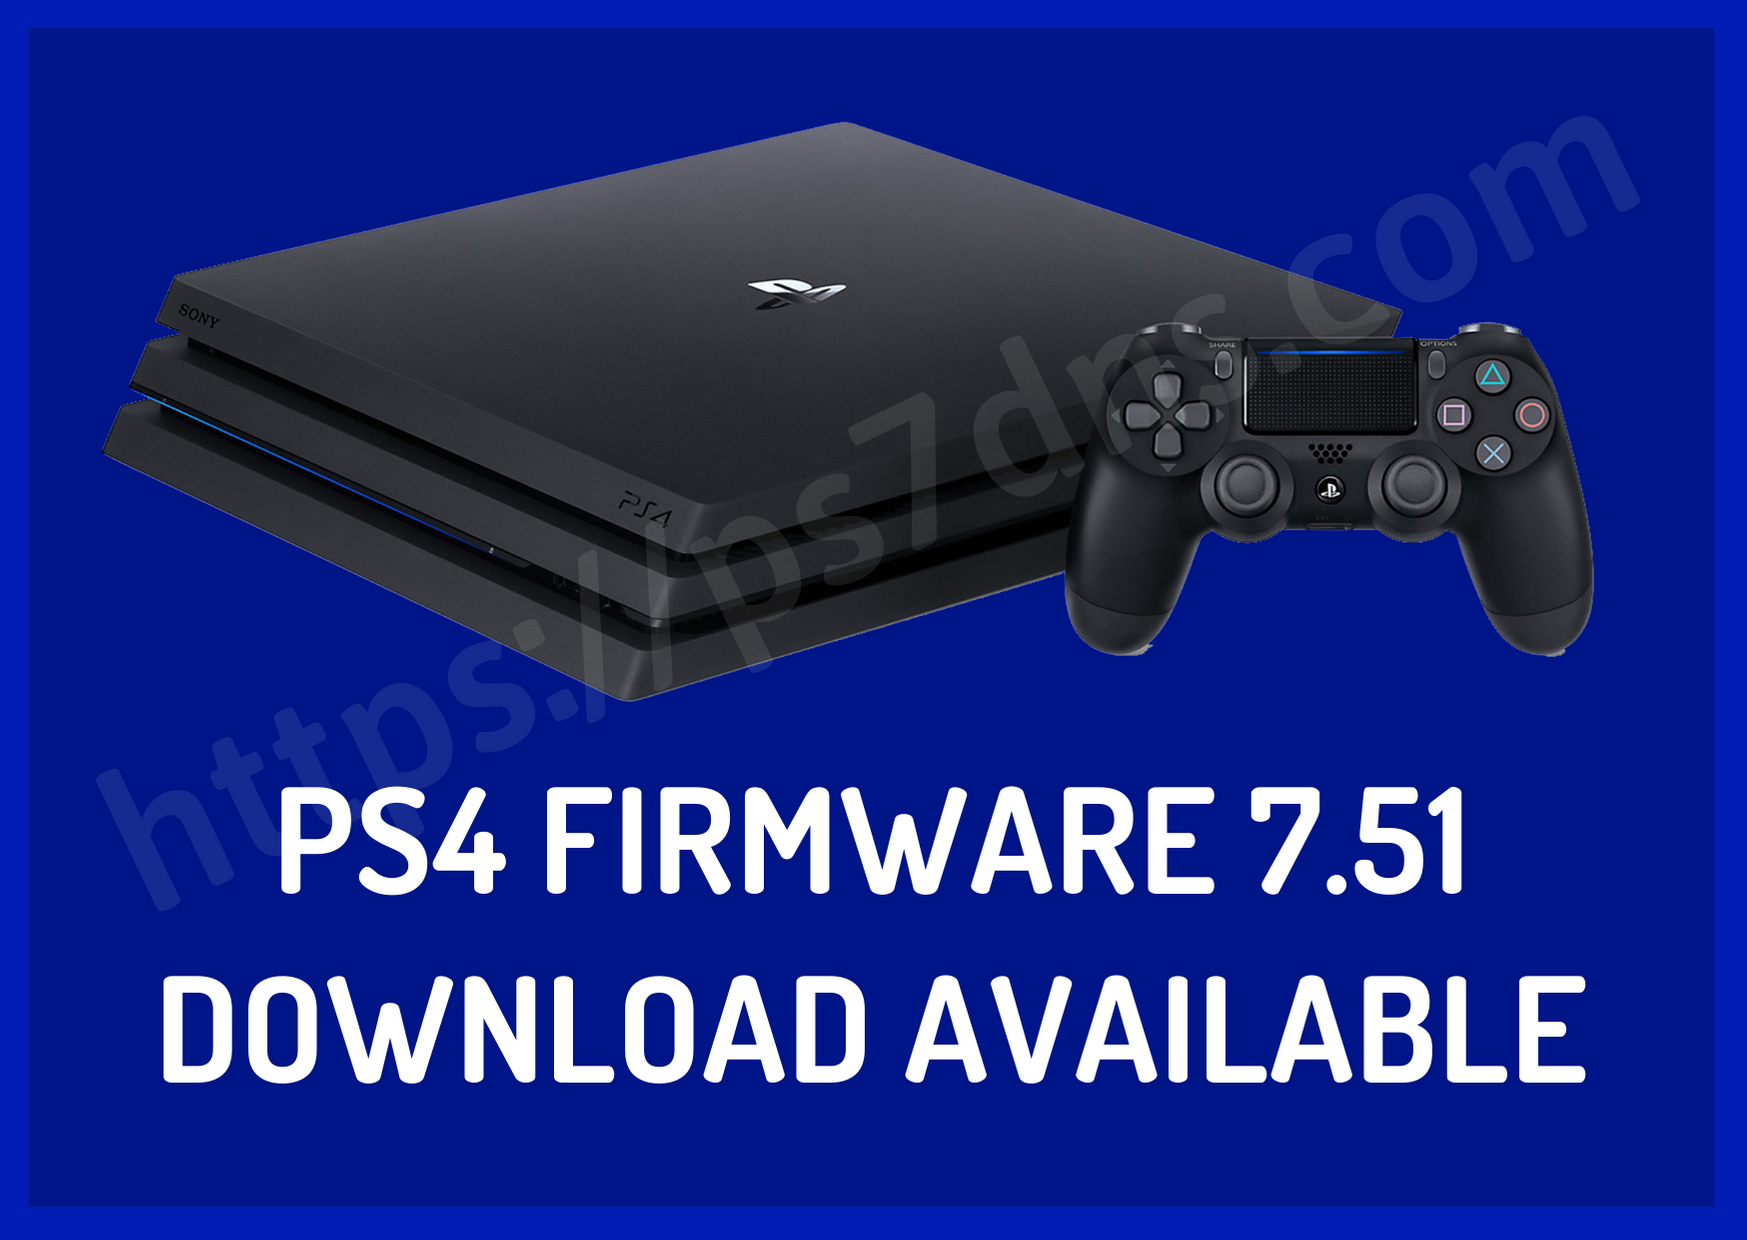 PS4 Firmware 7.51 Download Available